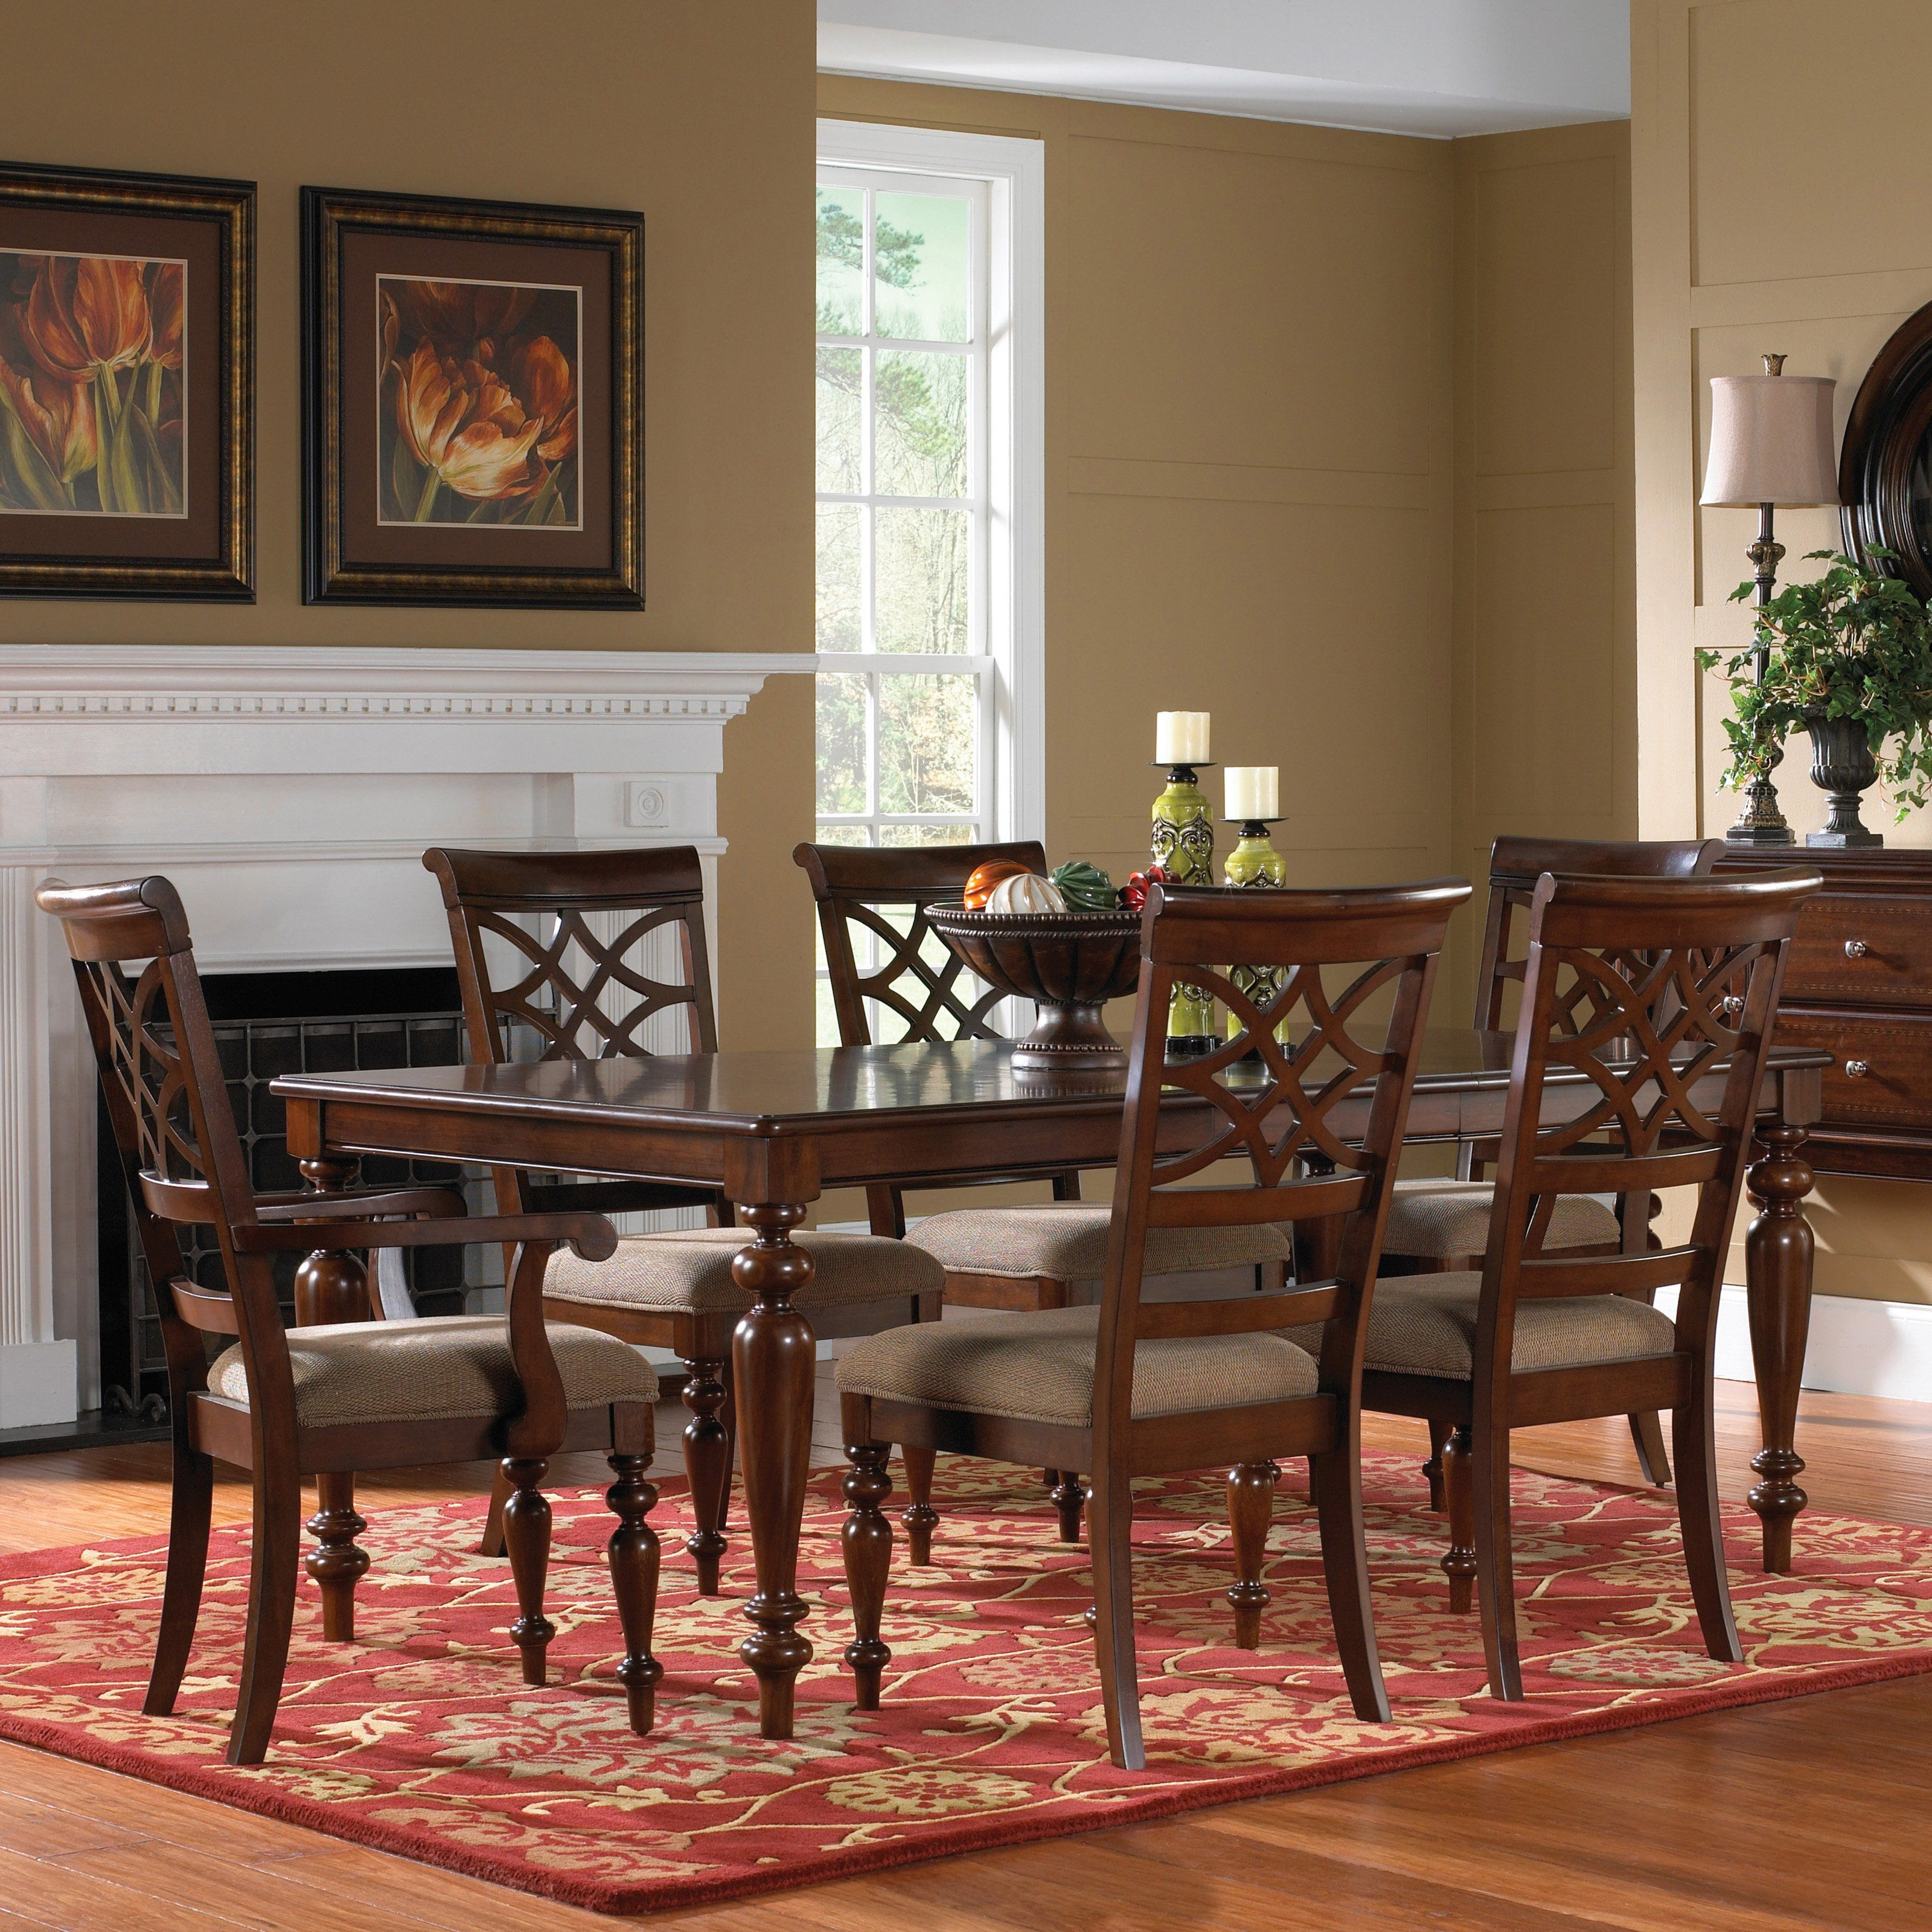 Have To Have It Standard Furniture Woodmont 7 Piece Rectangular Dining Table Set 106 Rectangular Dining Table Standard Furniture Counter Height Dining Sets